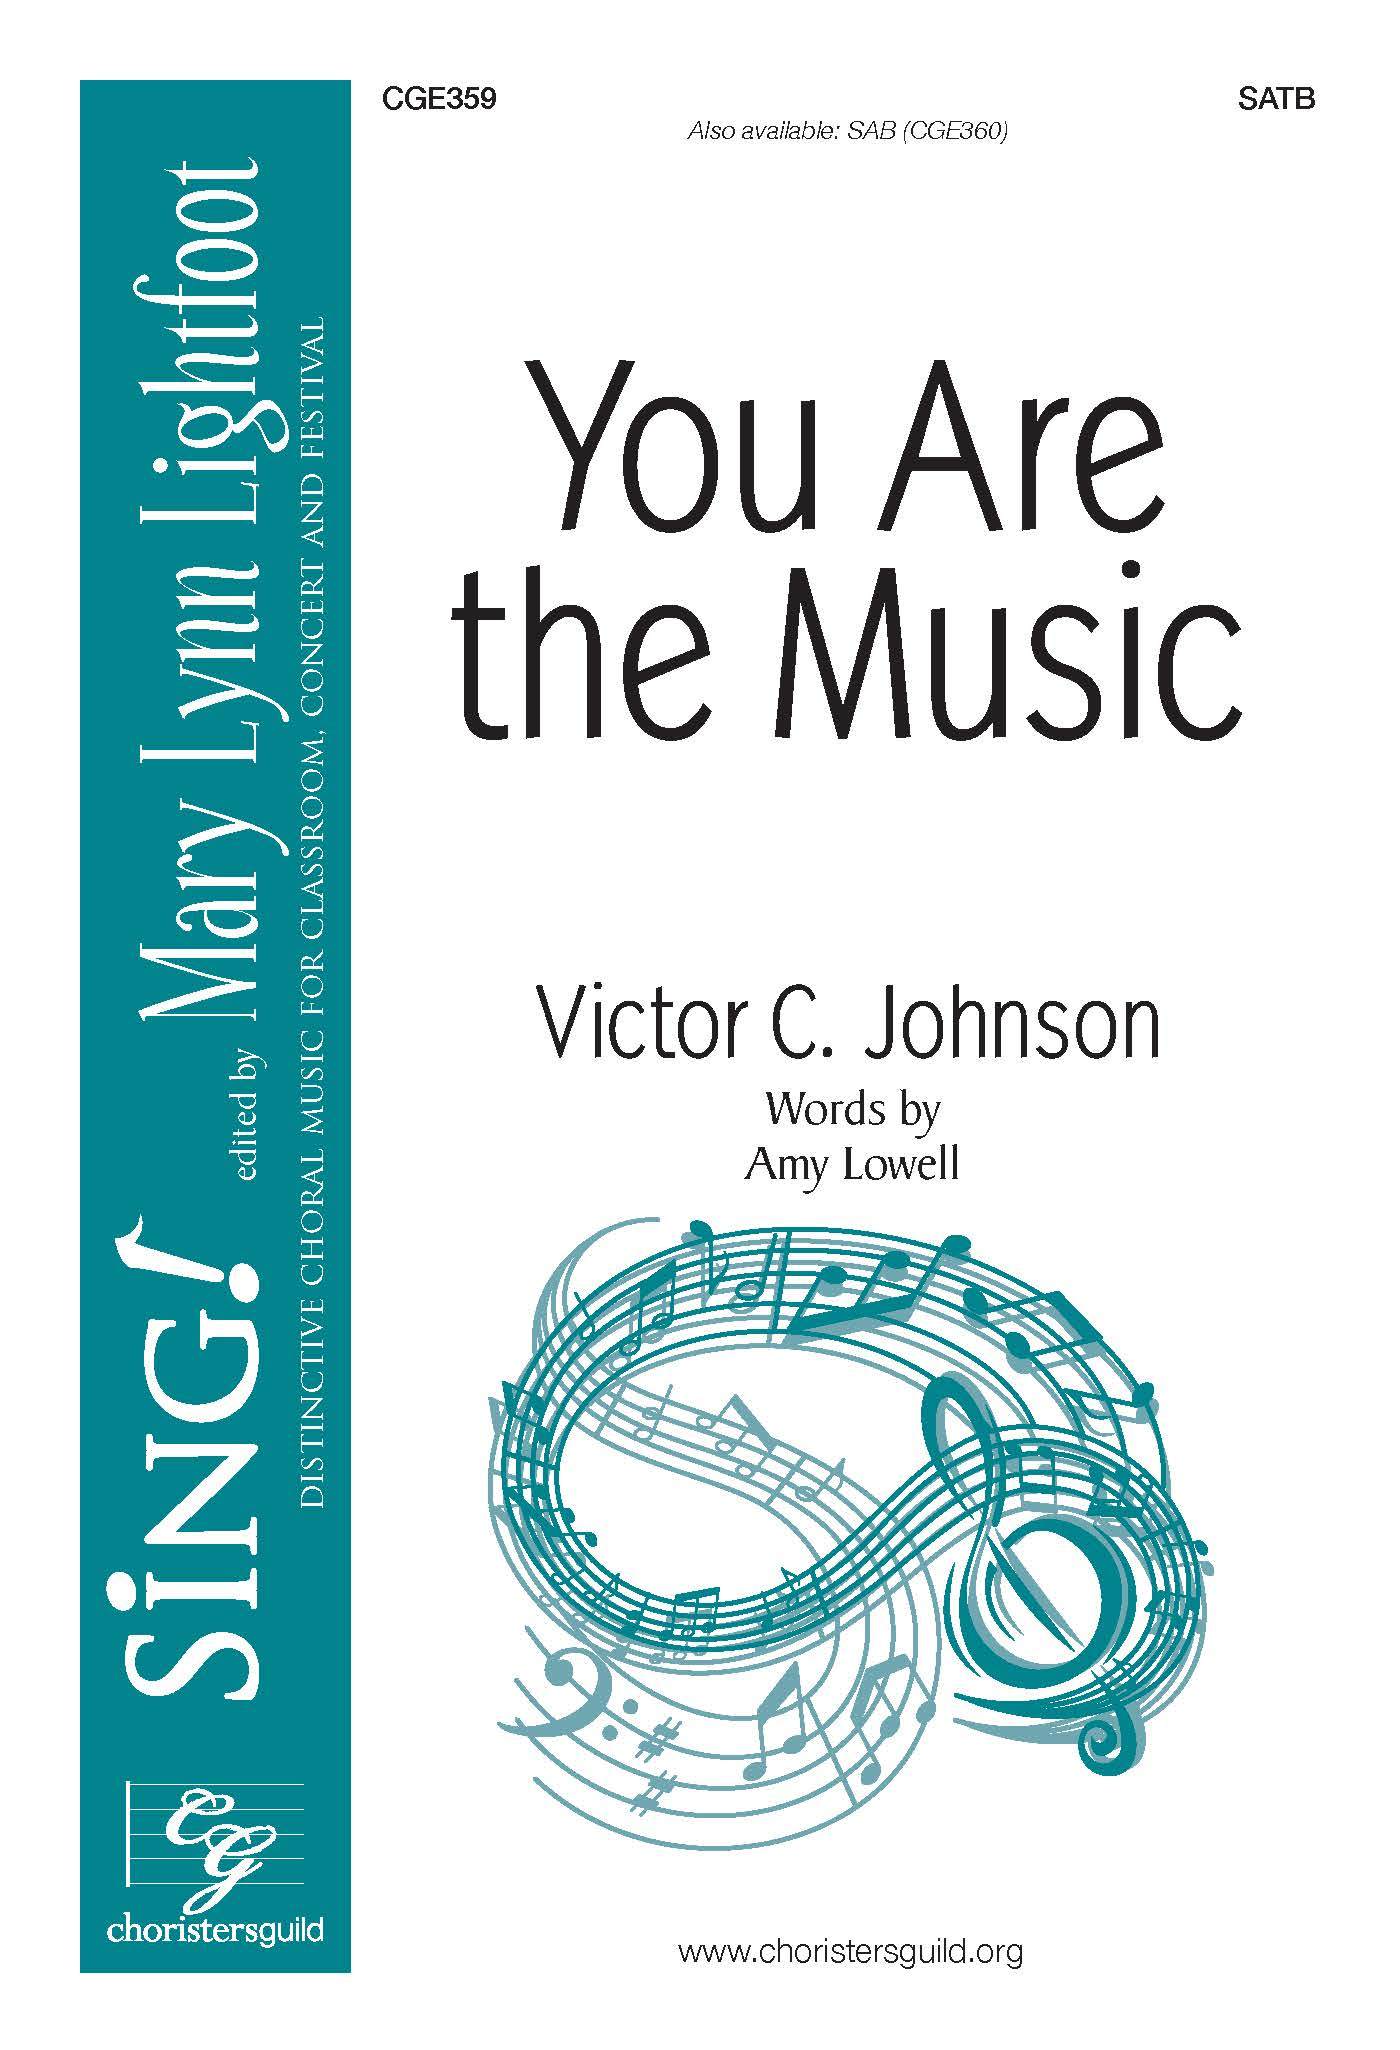 You Are the Music - SATB